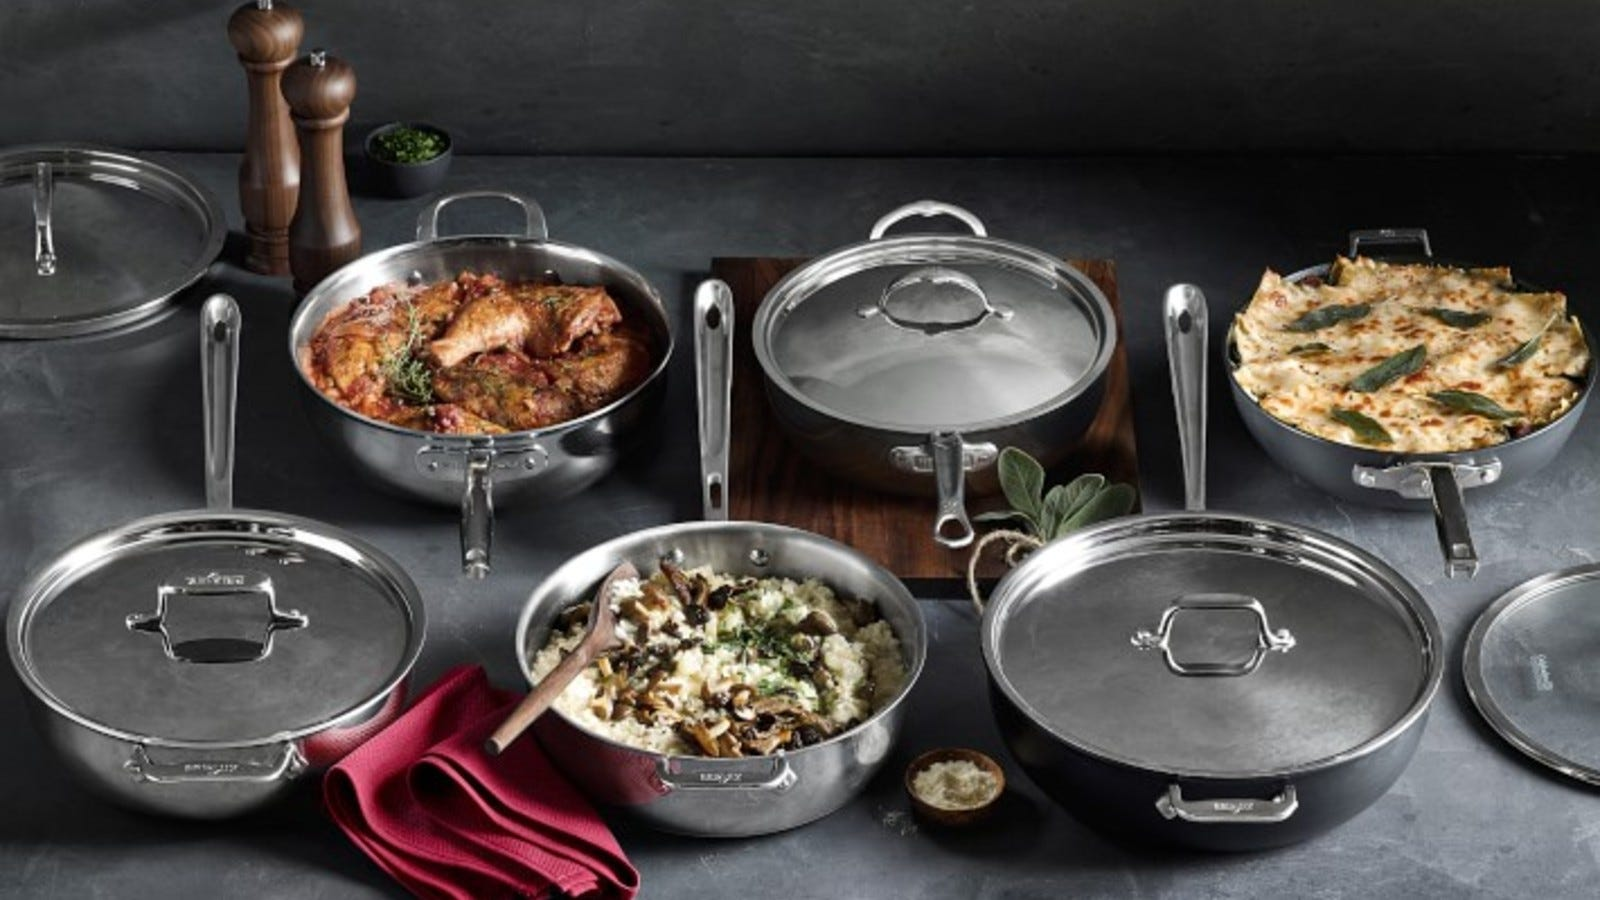 A set of stainless steel pans with freshly cooked food inside.